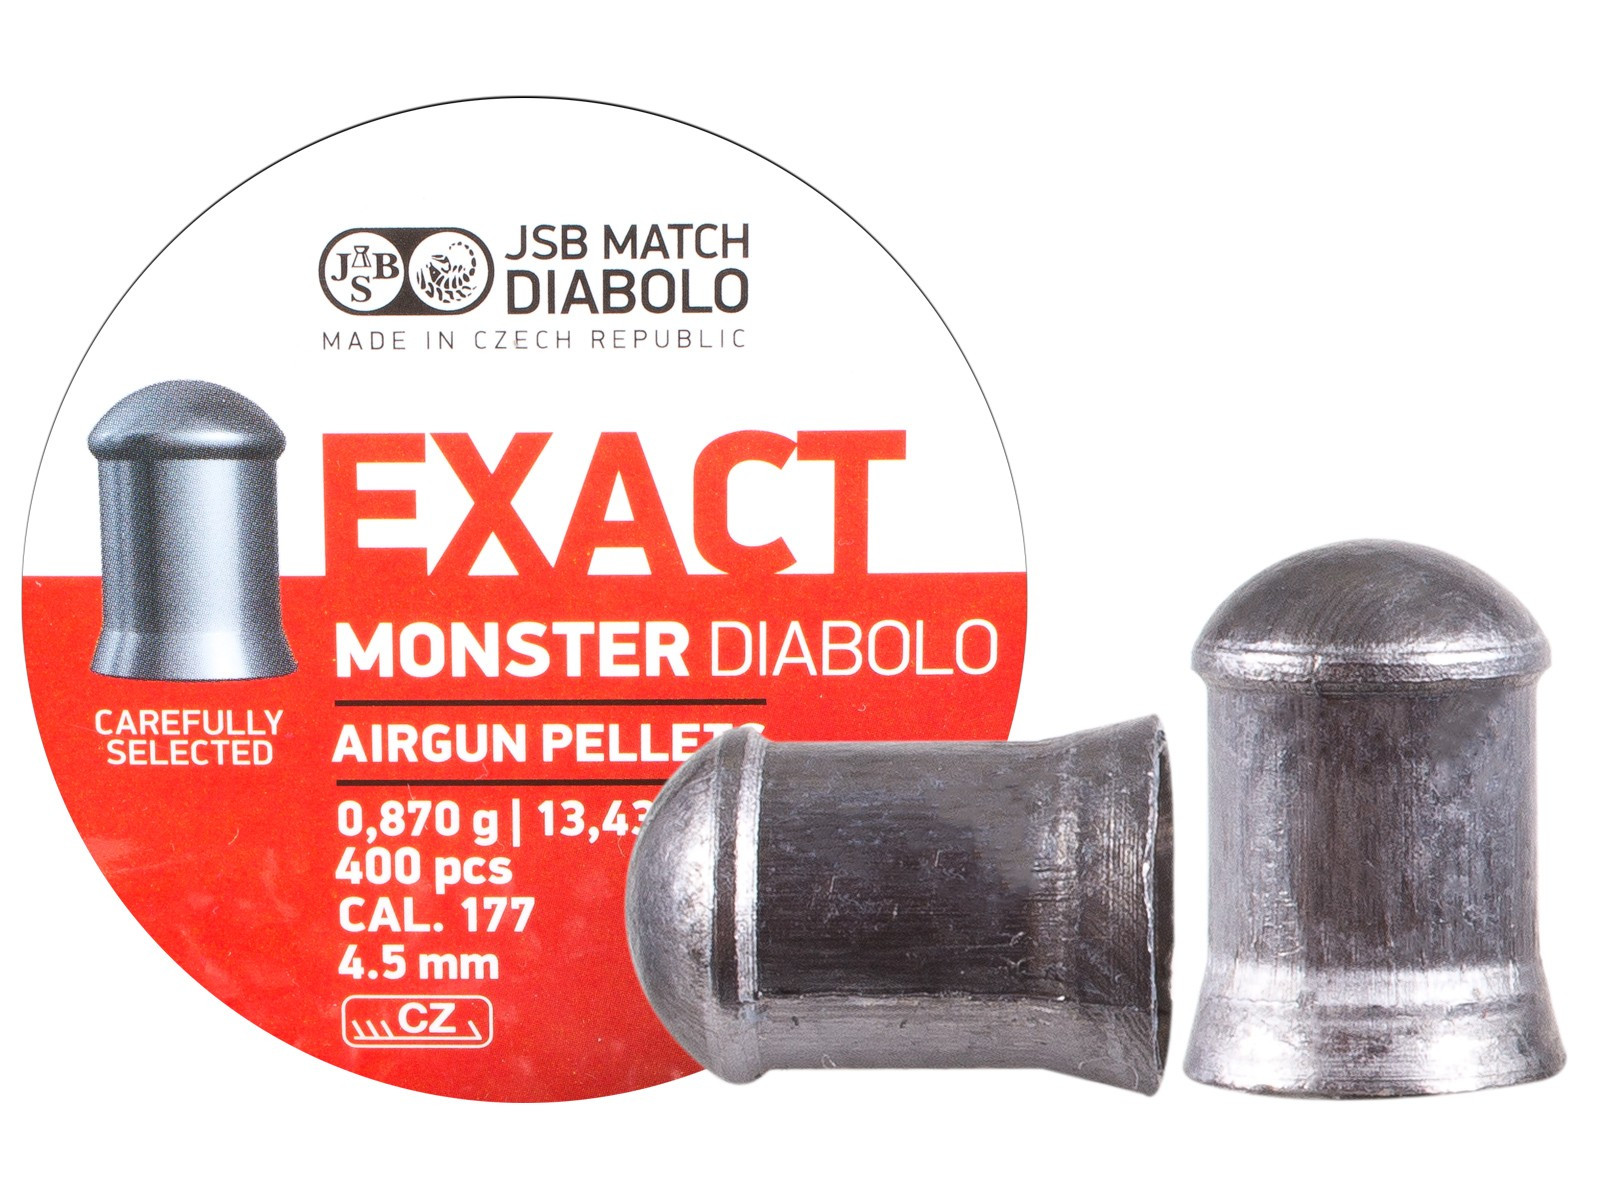 JSB Diabolo Exact Monster .177 Cal, 13.4 gr - 400 ct